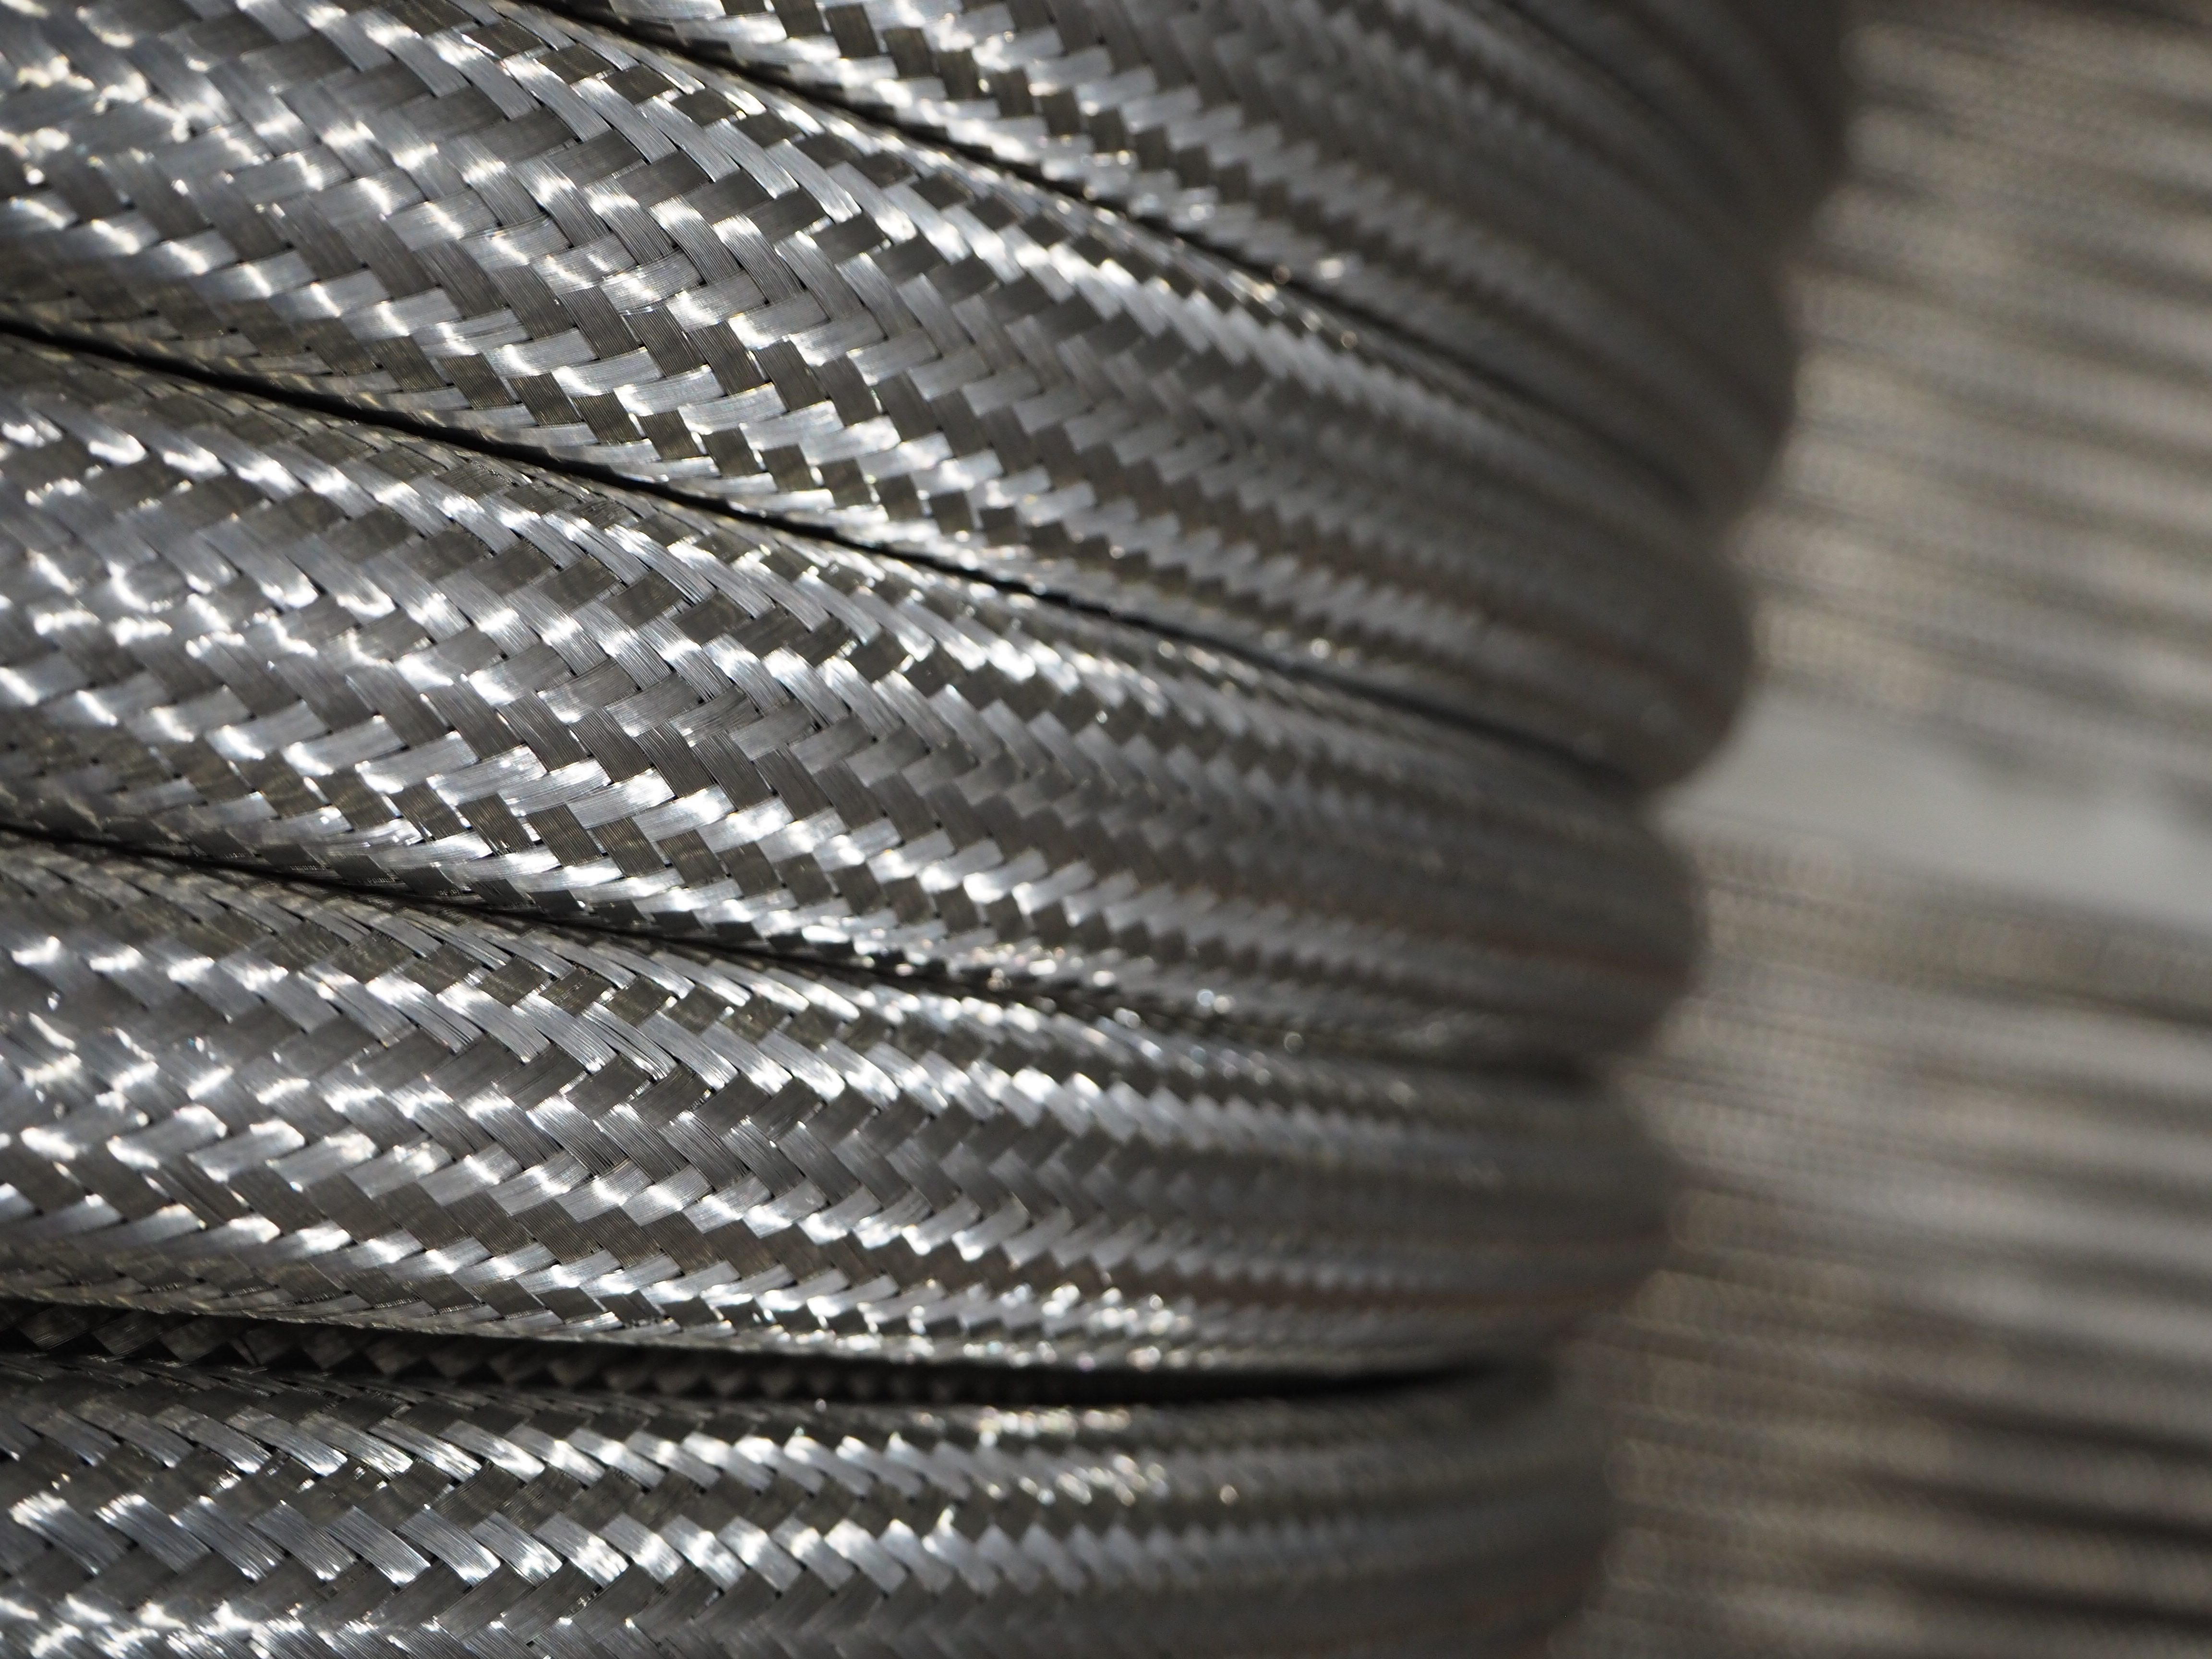 Sleeving Braid - Mettex